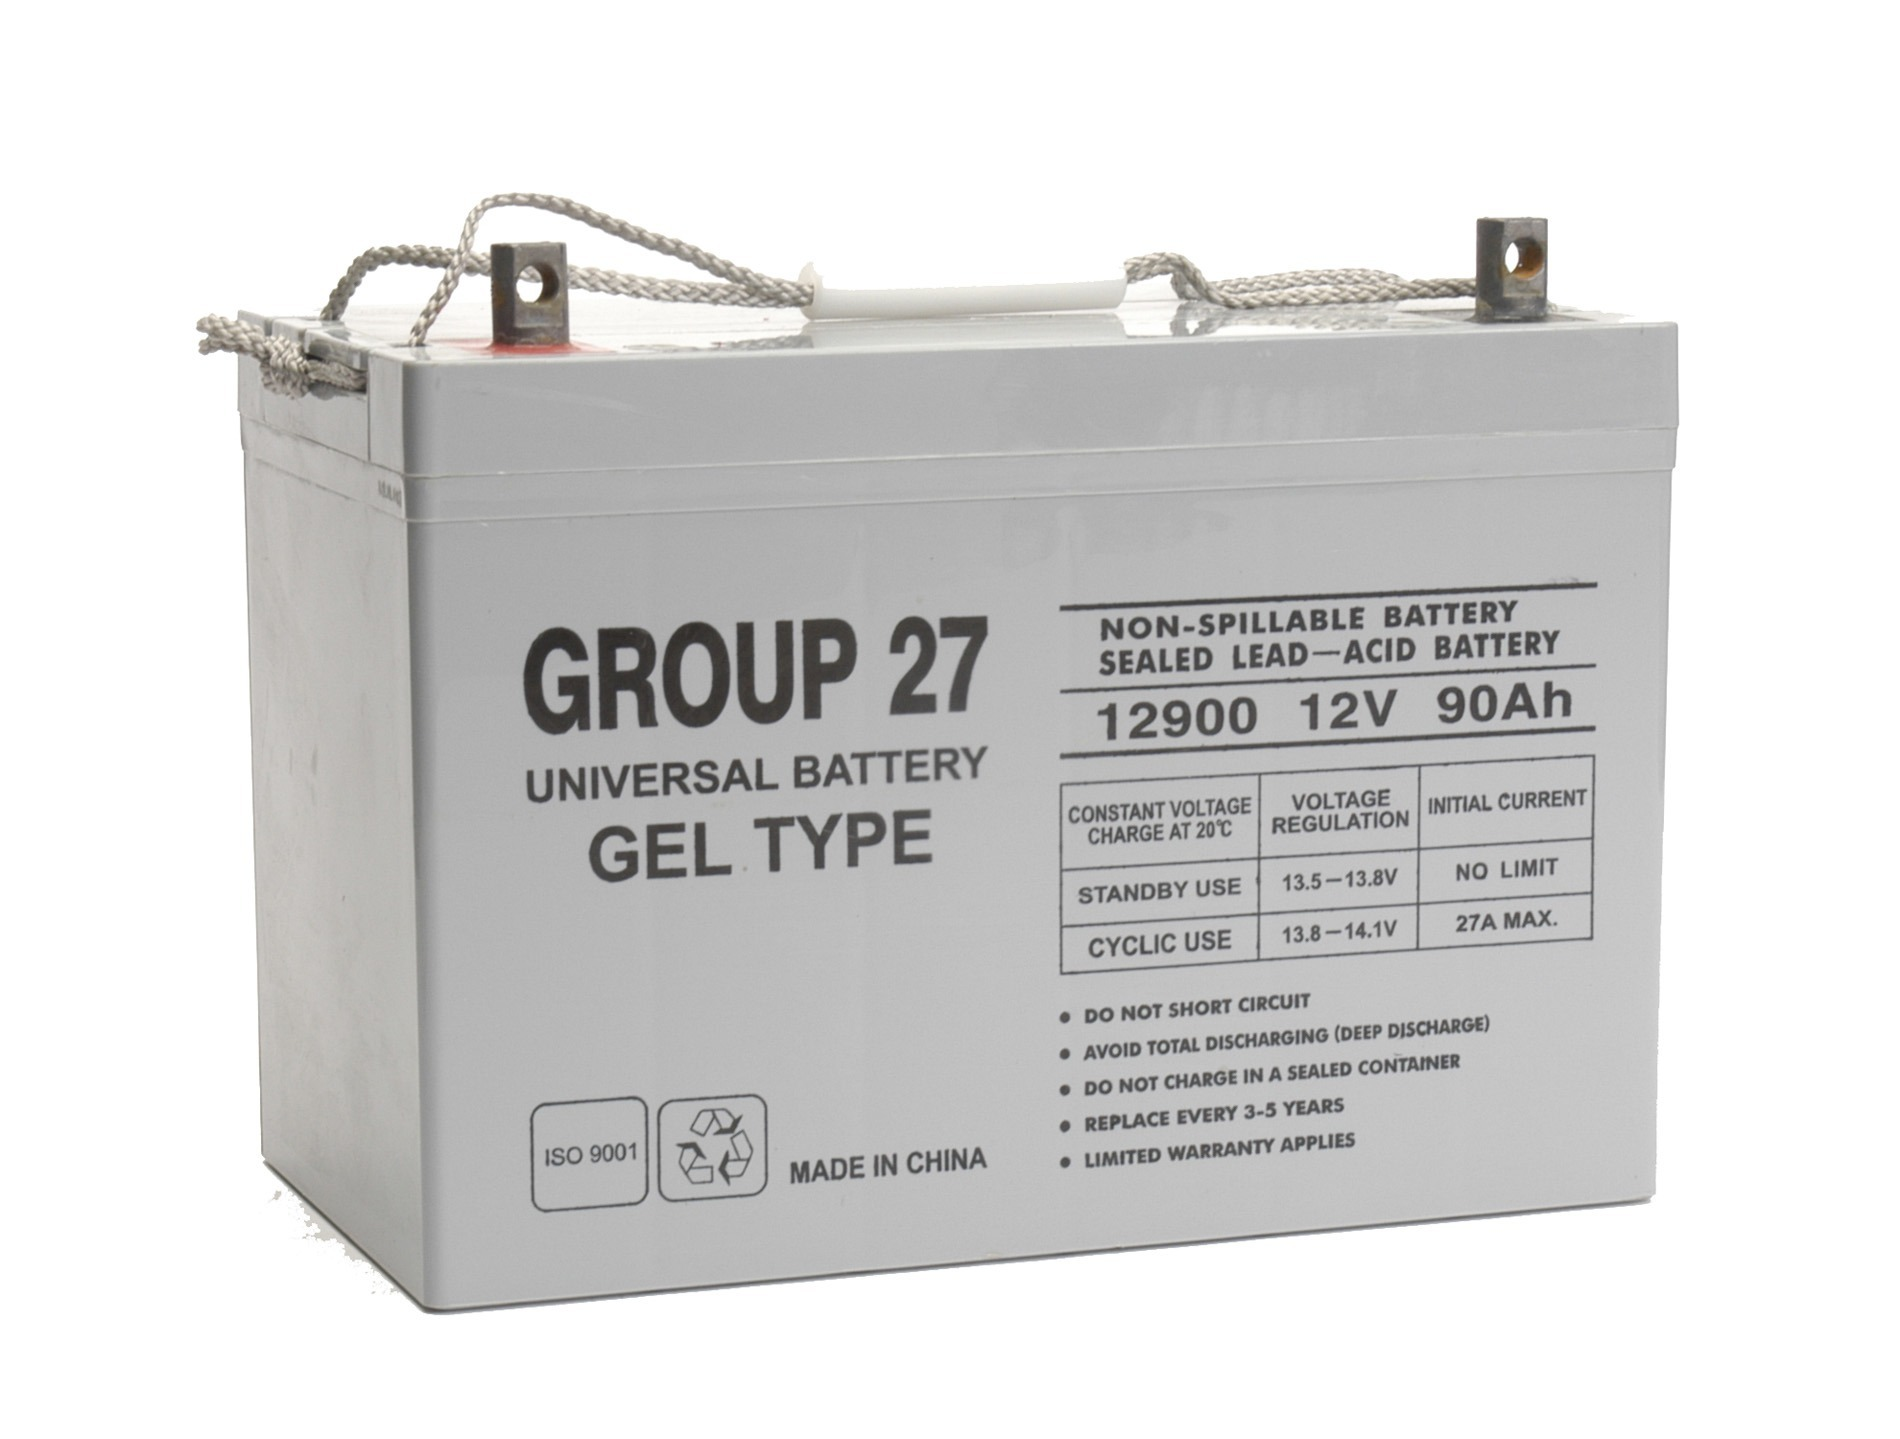 UB12900 (Group 27) 12v 90ah GEL Battery for Permobil Trax Sports Wheelchair